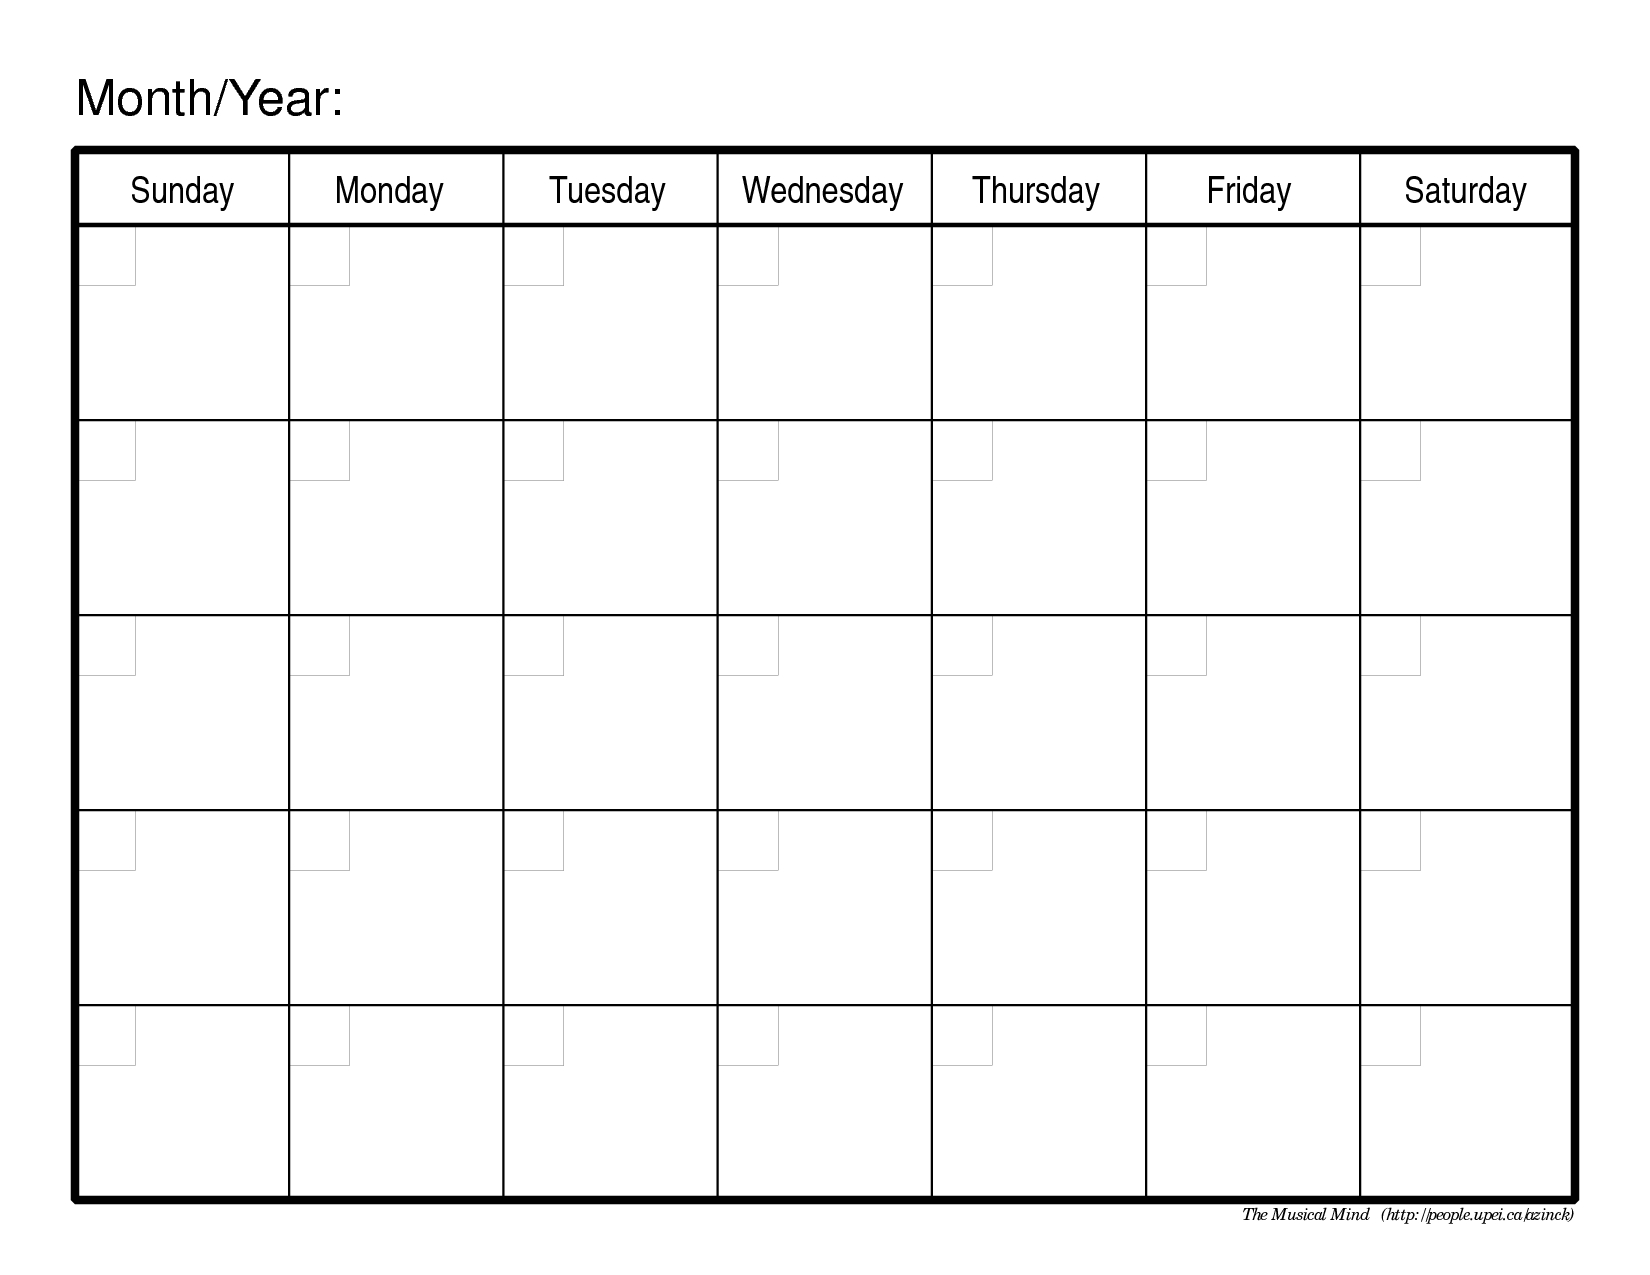 Monthly Calendar Template | Organizing | Monthly Calendar Template regarding Blank Monthly Calendars To Print